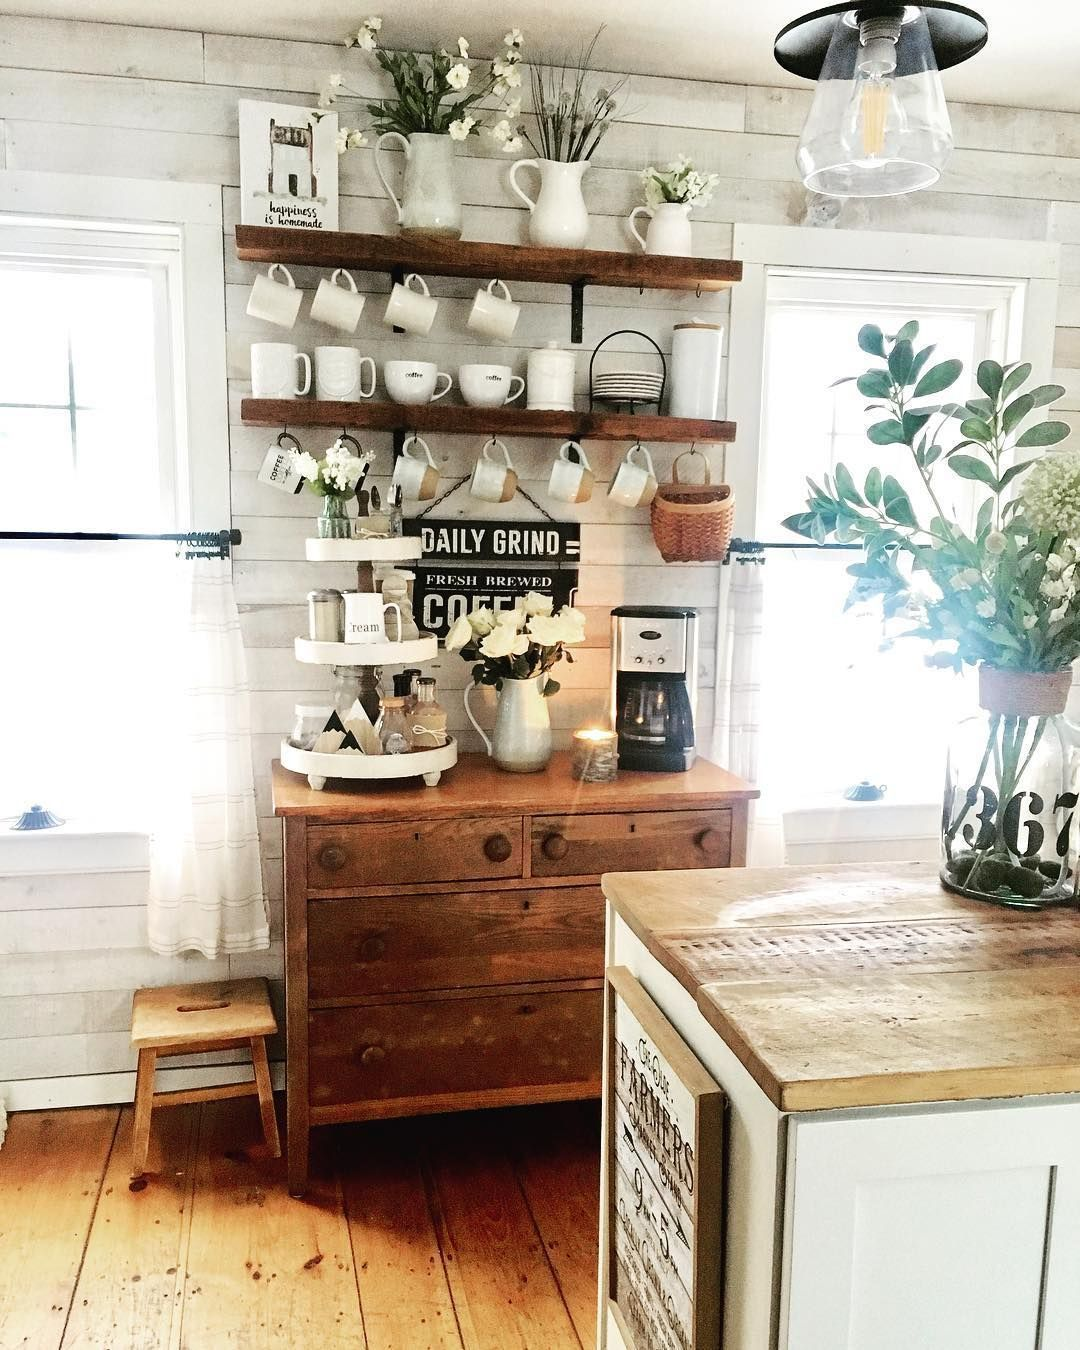 Glory On Instagram I Found This Old Dresser On Craigslist And Paid 20 For It We Changed In 2020 Coffee Bars In Kitchen Coffee Bar Home Kitchen Bar